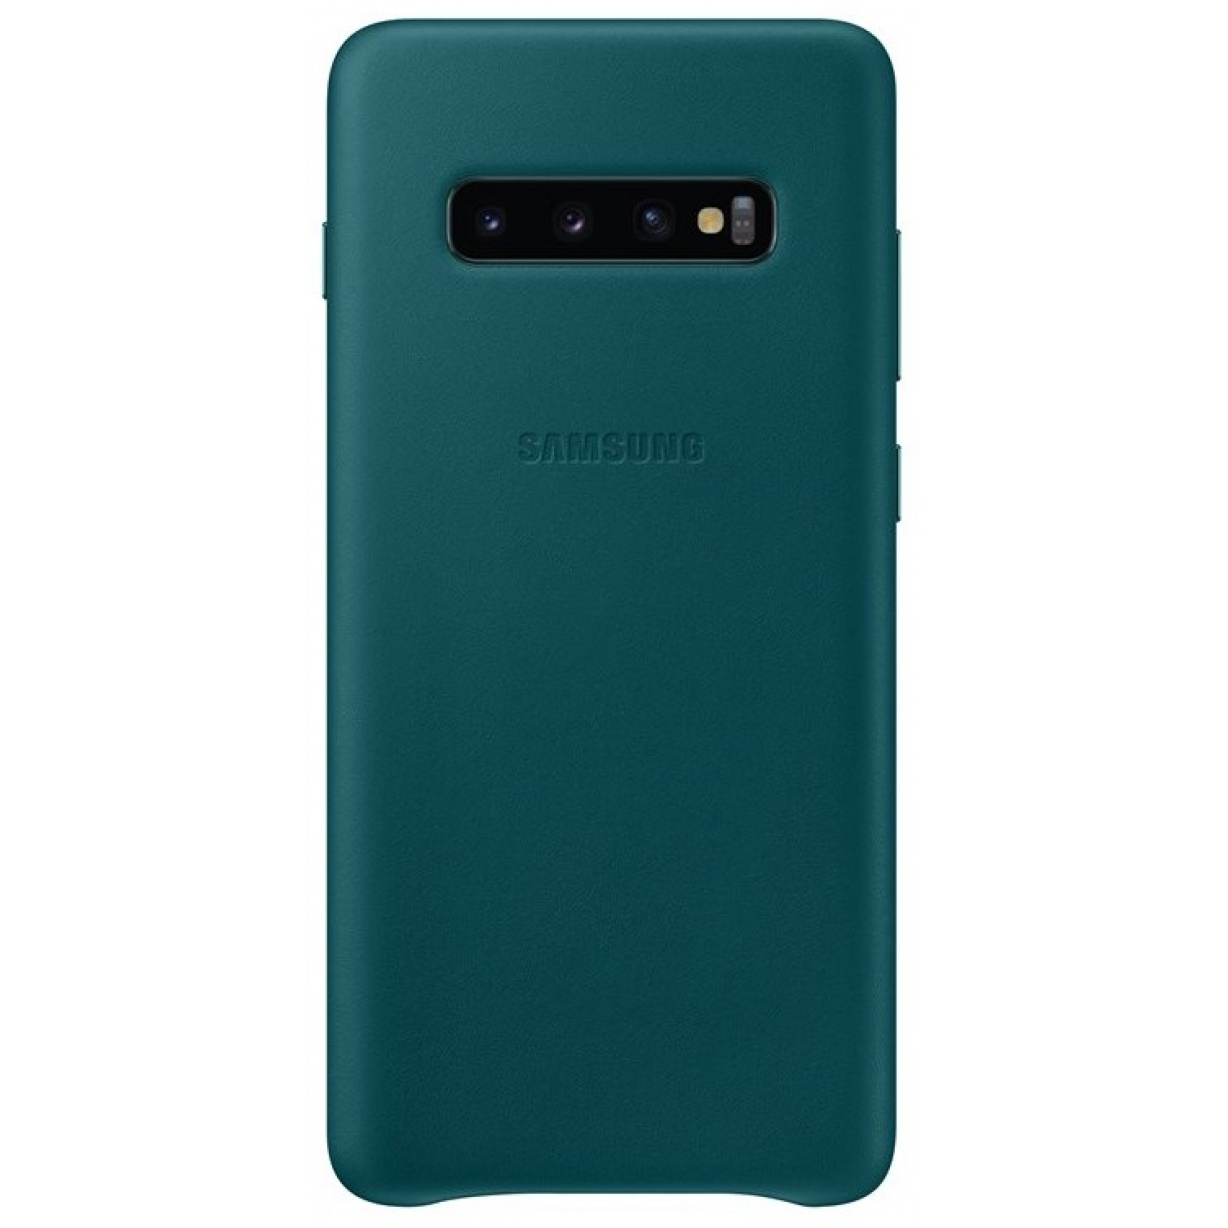 Nugarėlė G975 Samsung Galaxy S10+ Leather Cover Green